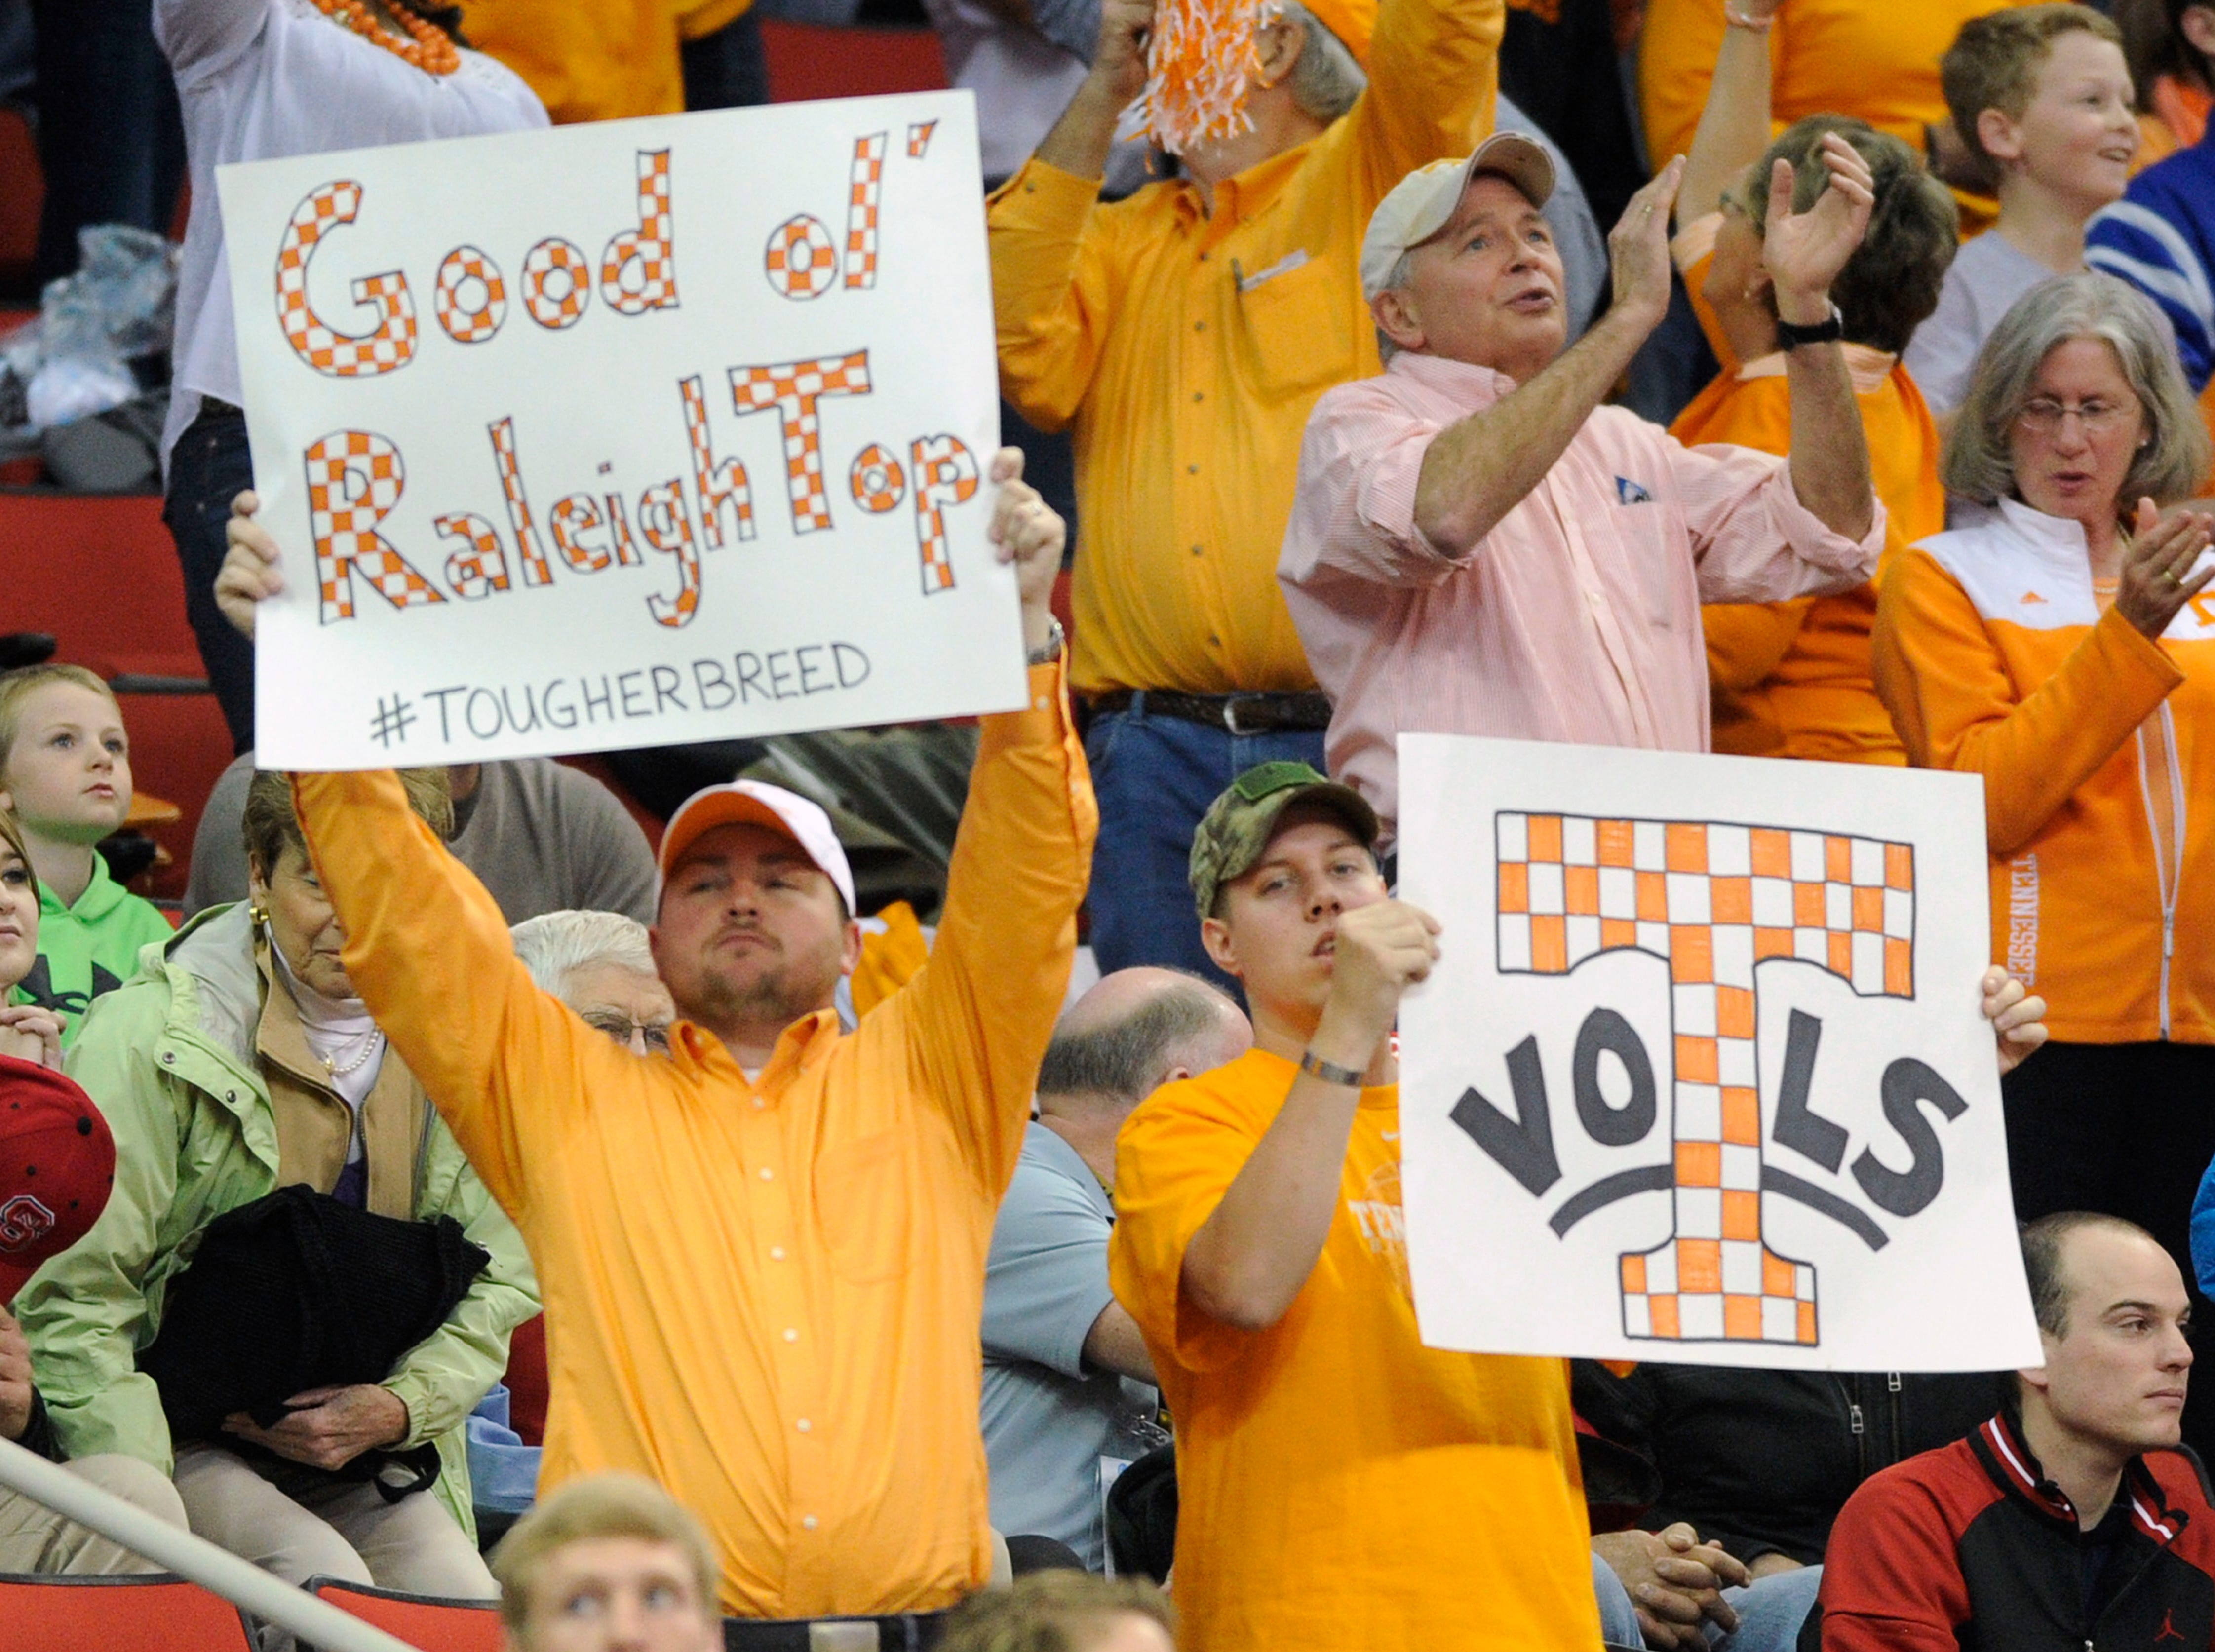 Tennessee fans hold up signs during the first half of a third-round NCAA tournament game against Mercer at the PNC Arena in Raleigh, N.C. on Sunday, March 23, 2014.